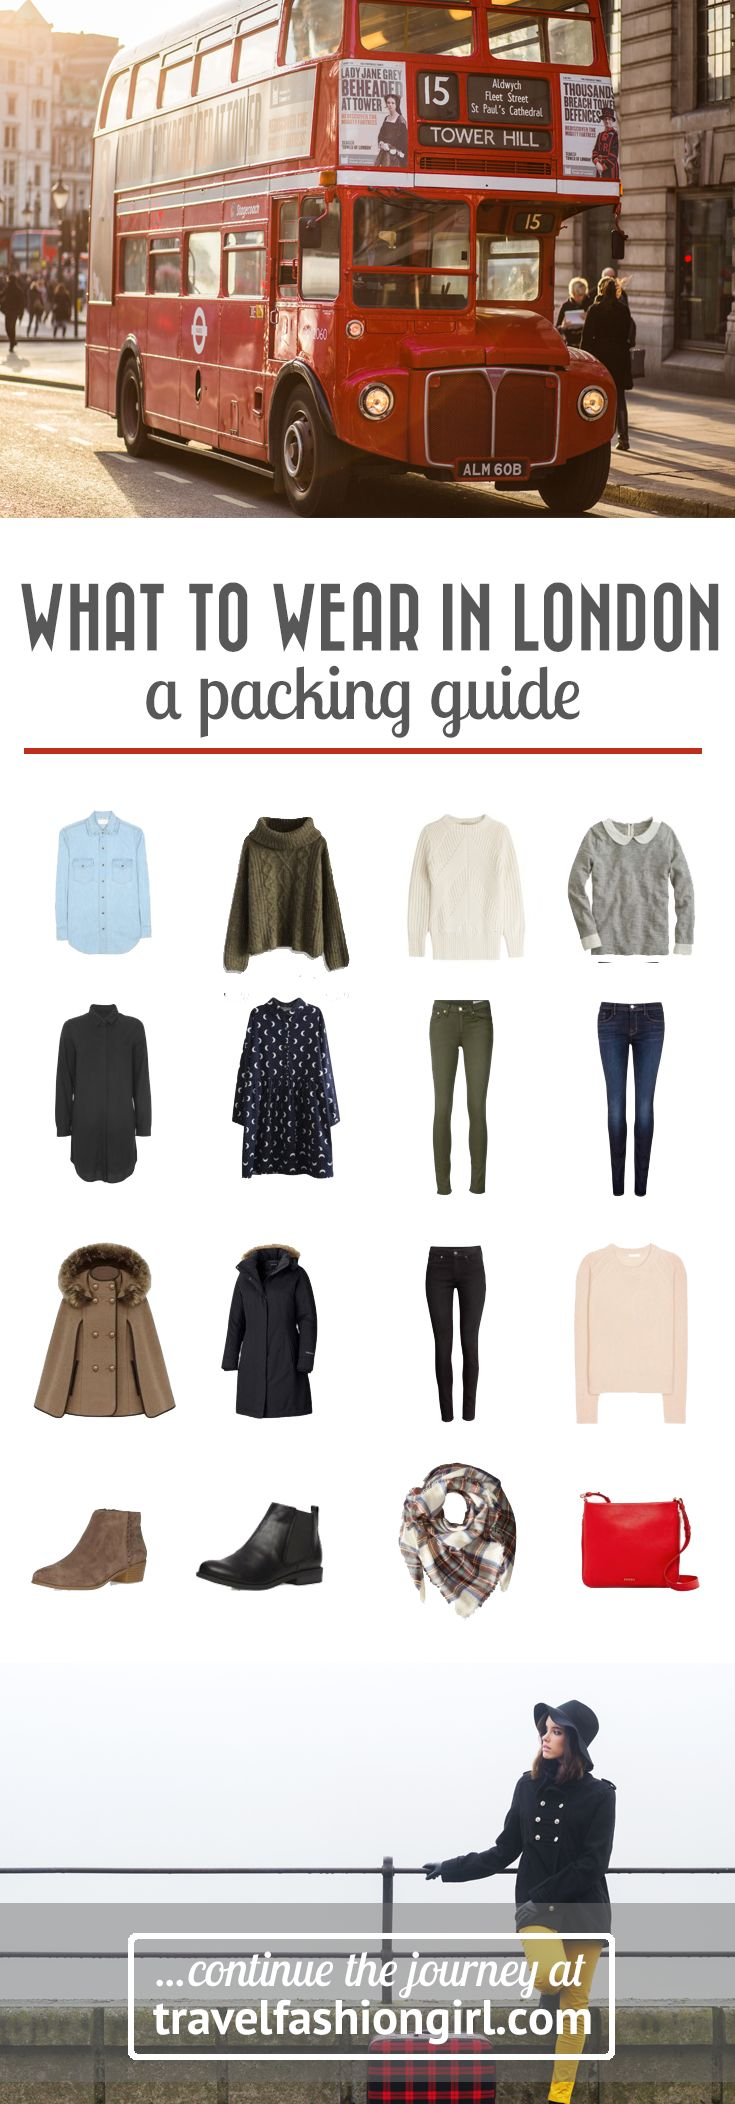 Wondering what to pack for London and other parts of England? Read this to find out what a local fashionista recommends for your packing list for the UK.   travelfashiongirl.com